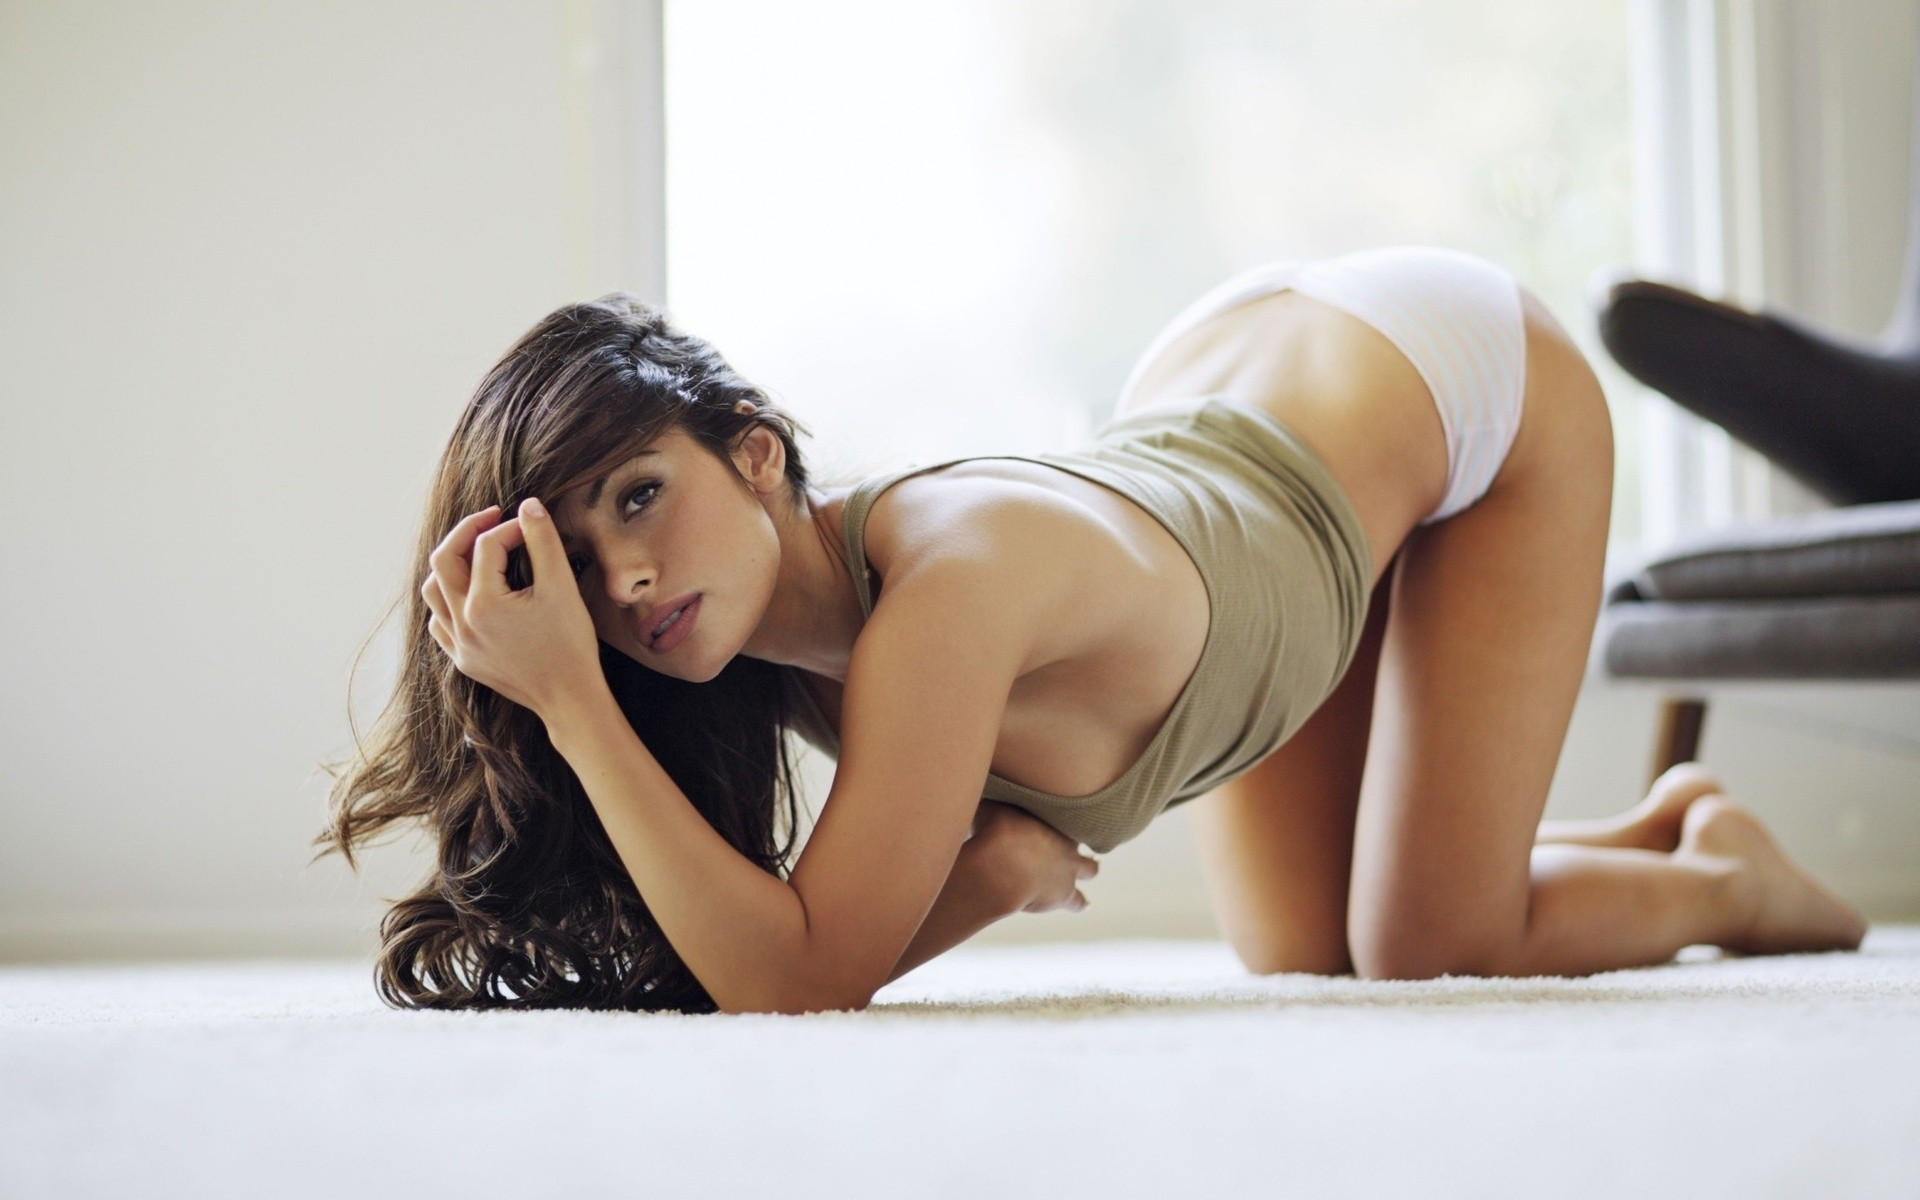 brunettes woman panties carpet HD Wallpaper